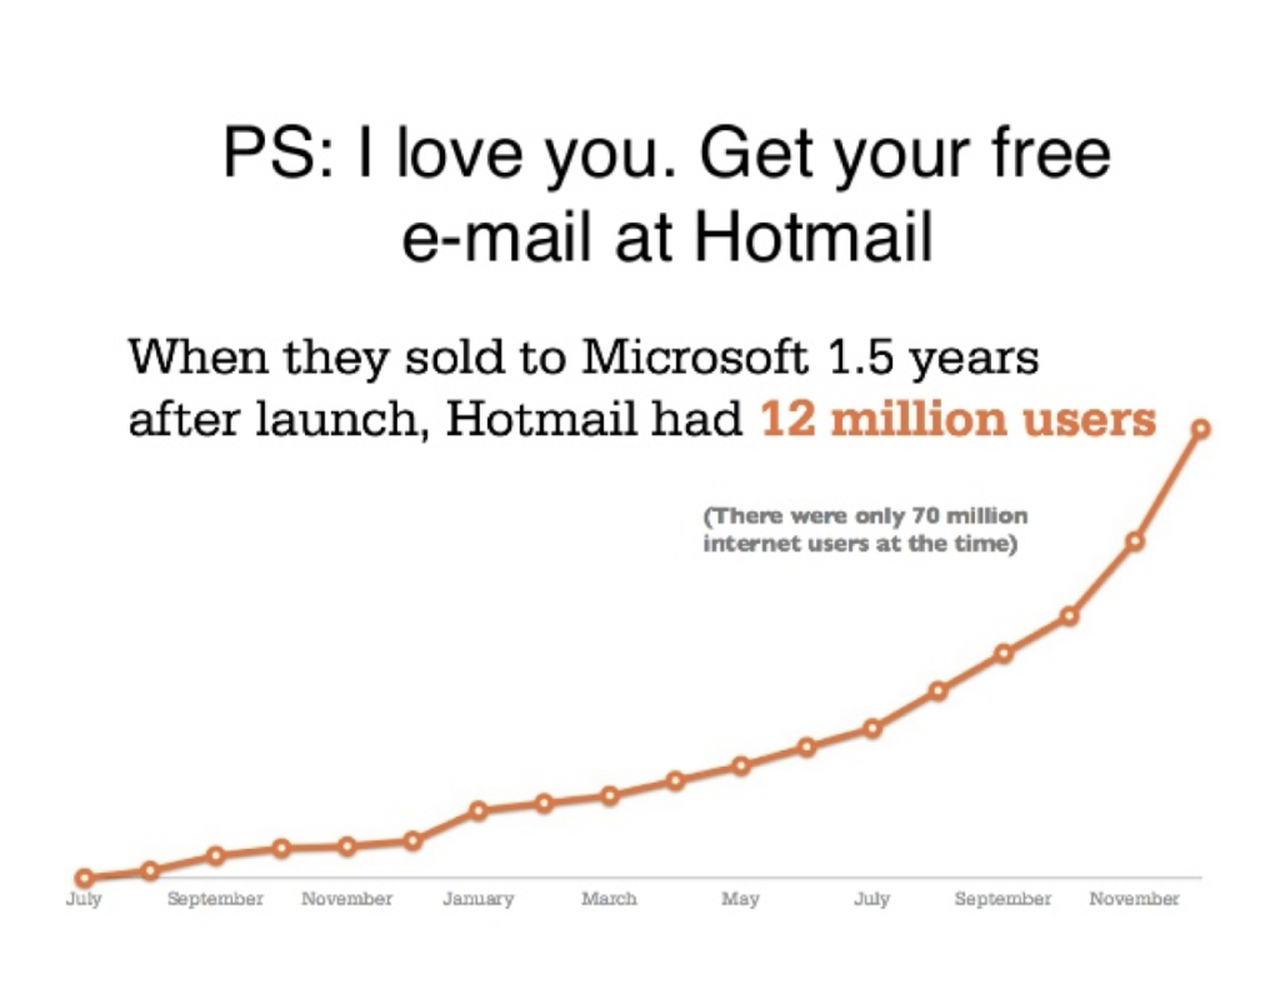 Hotmail growth hacking example.